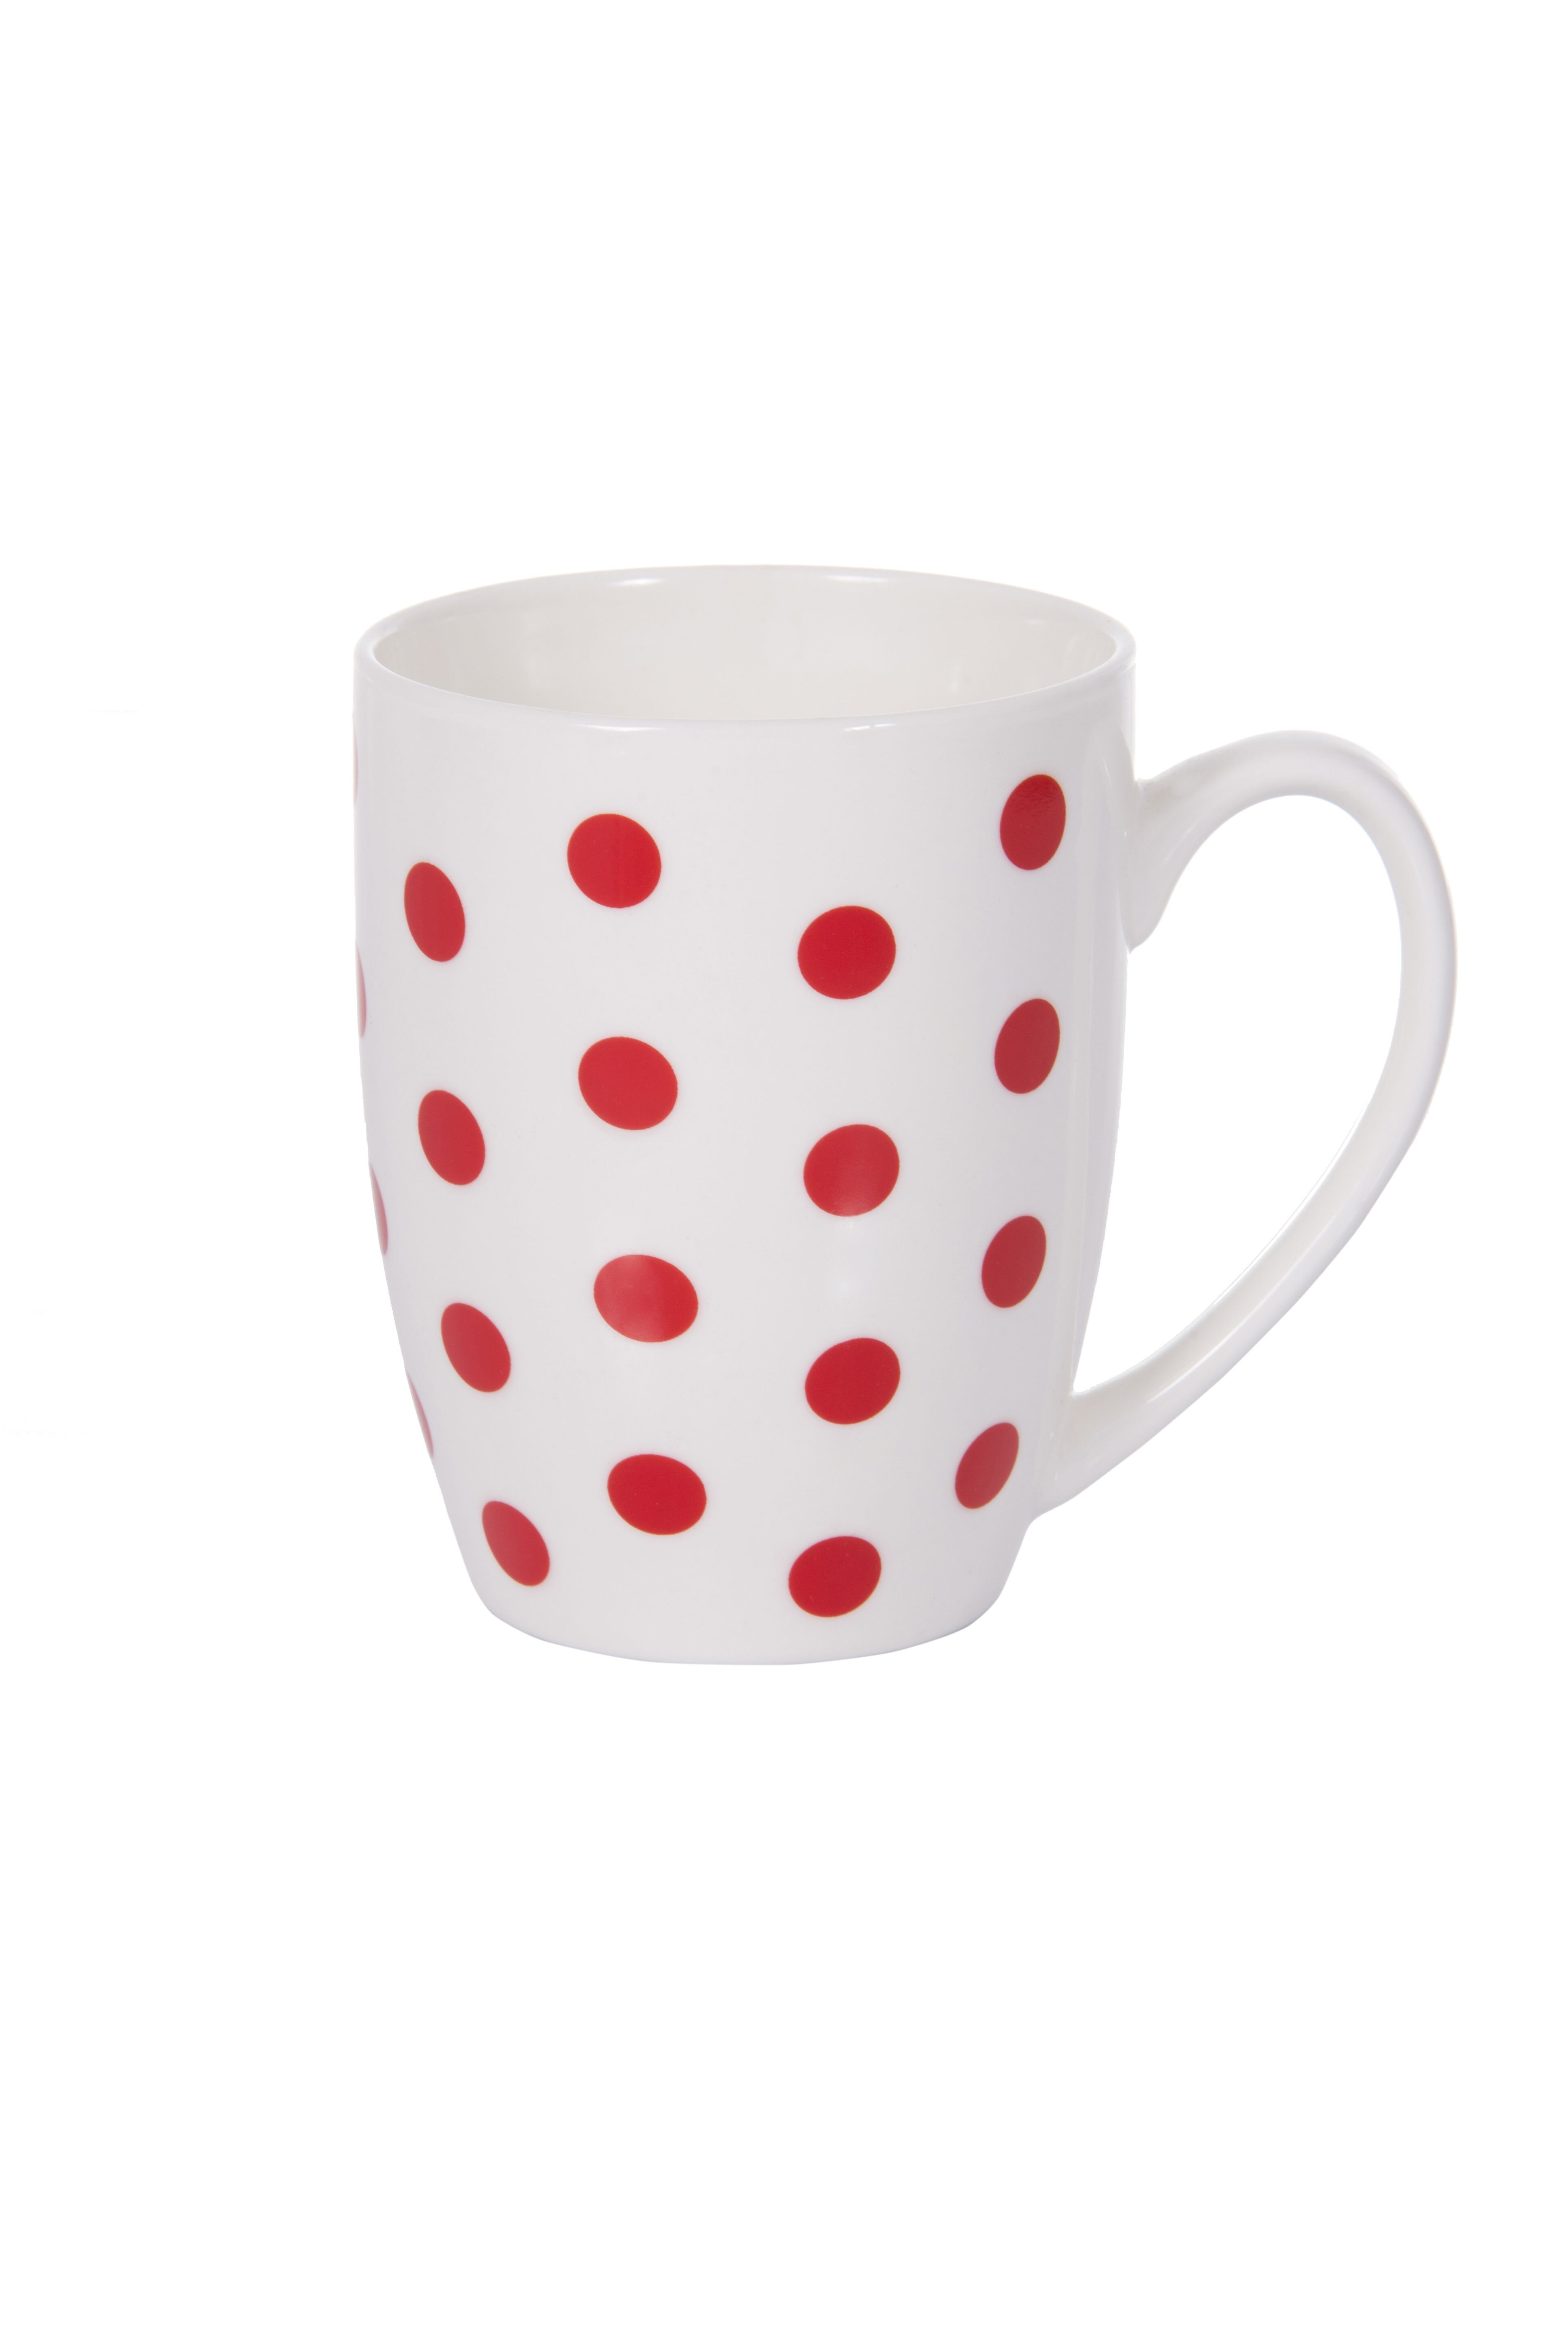 Cana nbc Ambition, 39909, 380ml, Red Dots, Alb